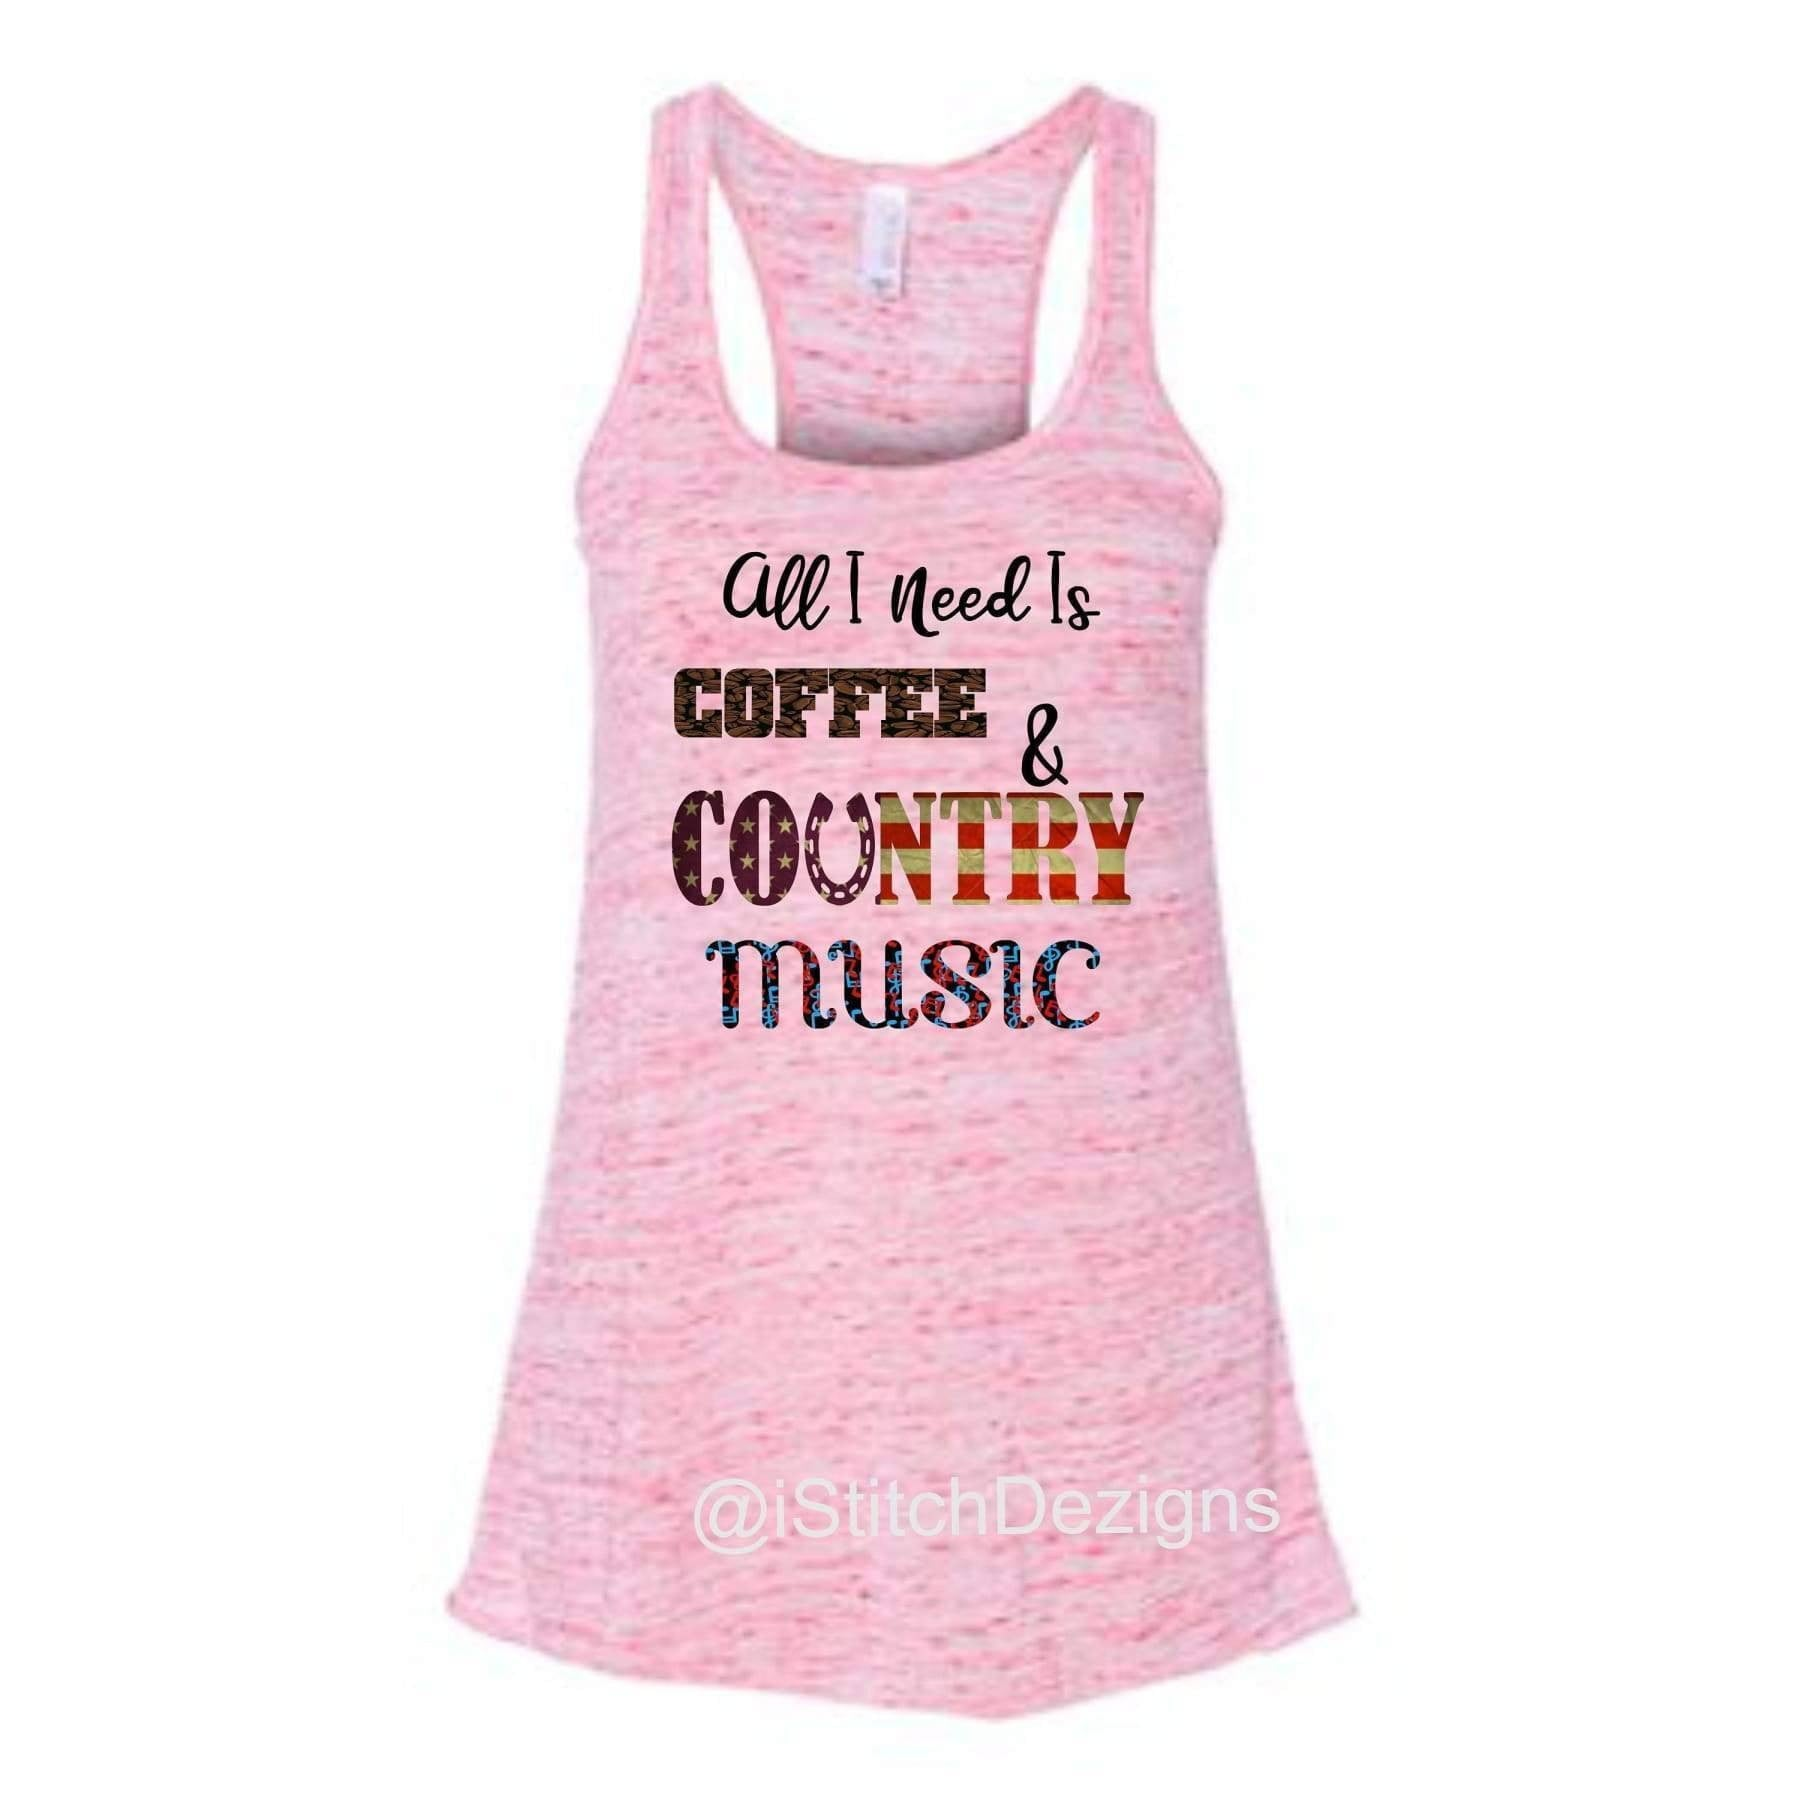 All I need is Coffee and Country Music Tank.